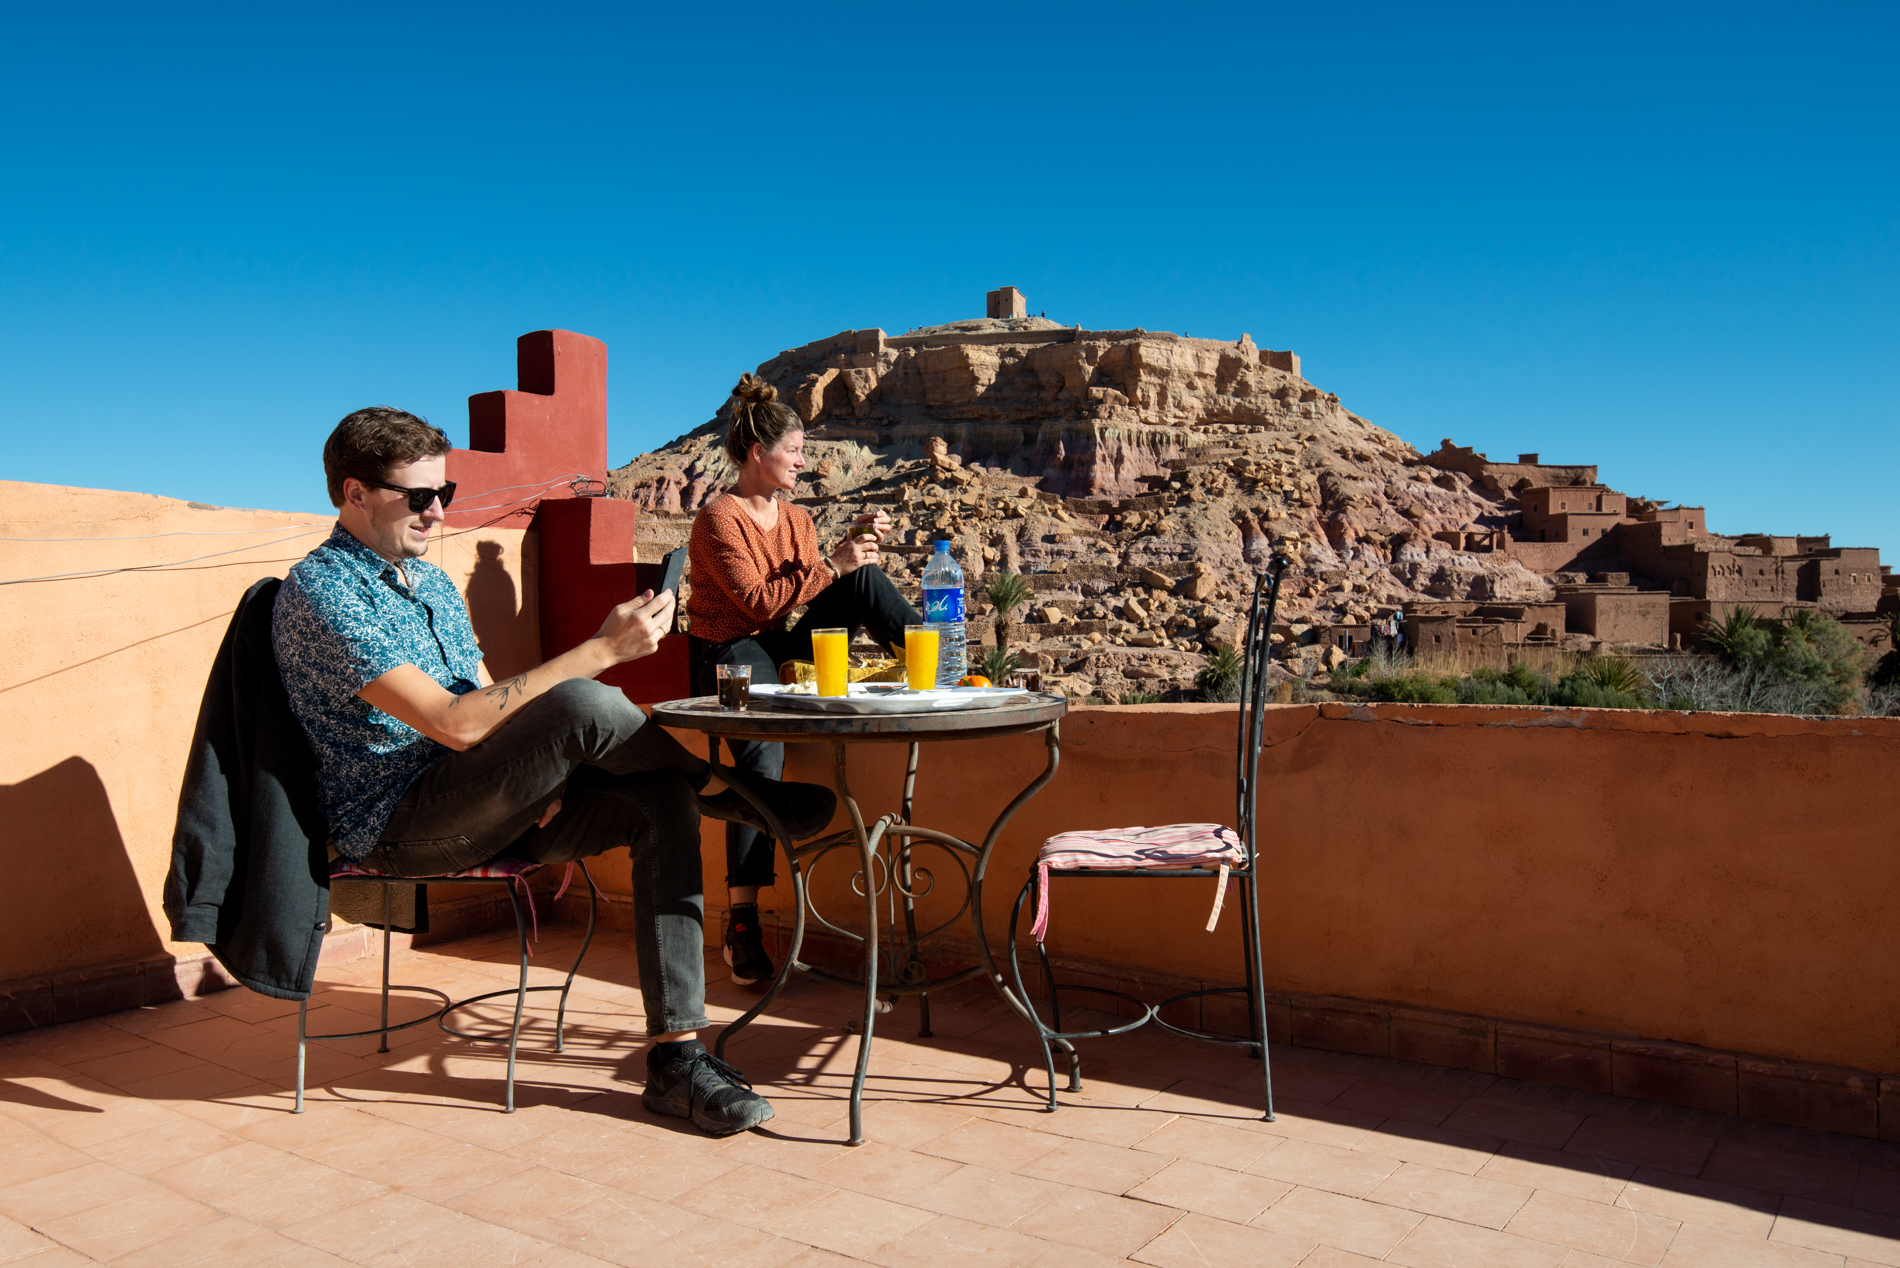 Ellis and me having breakfast at Ait Ben Haddou, Morocco.